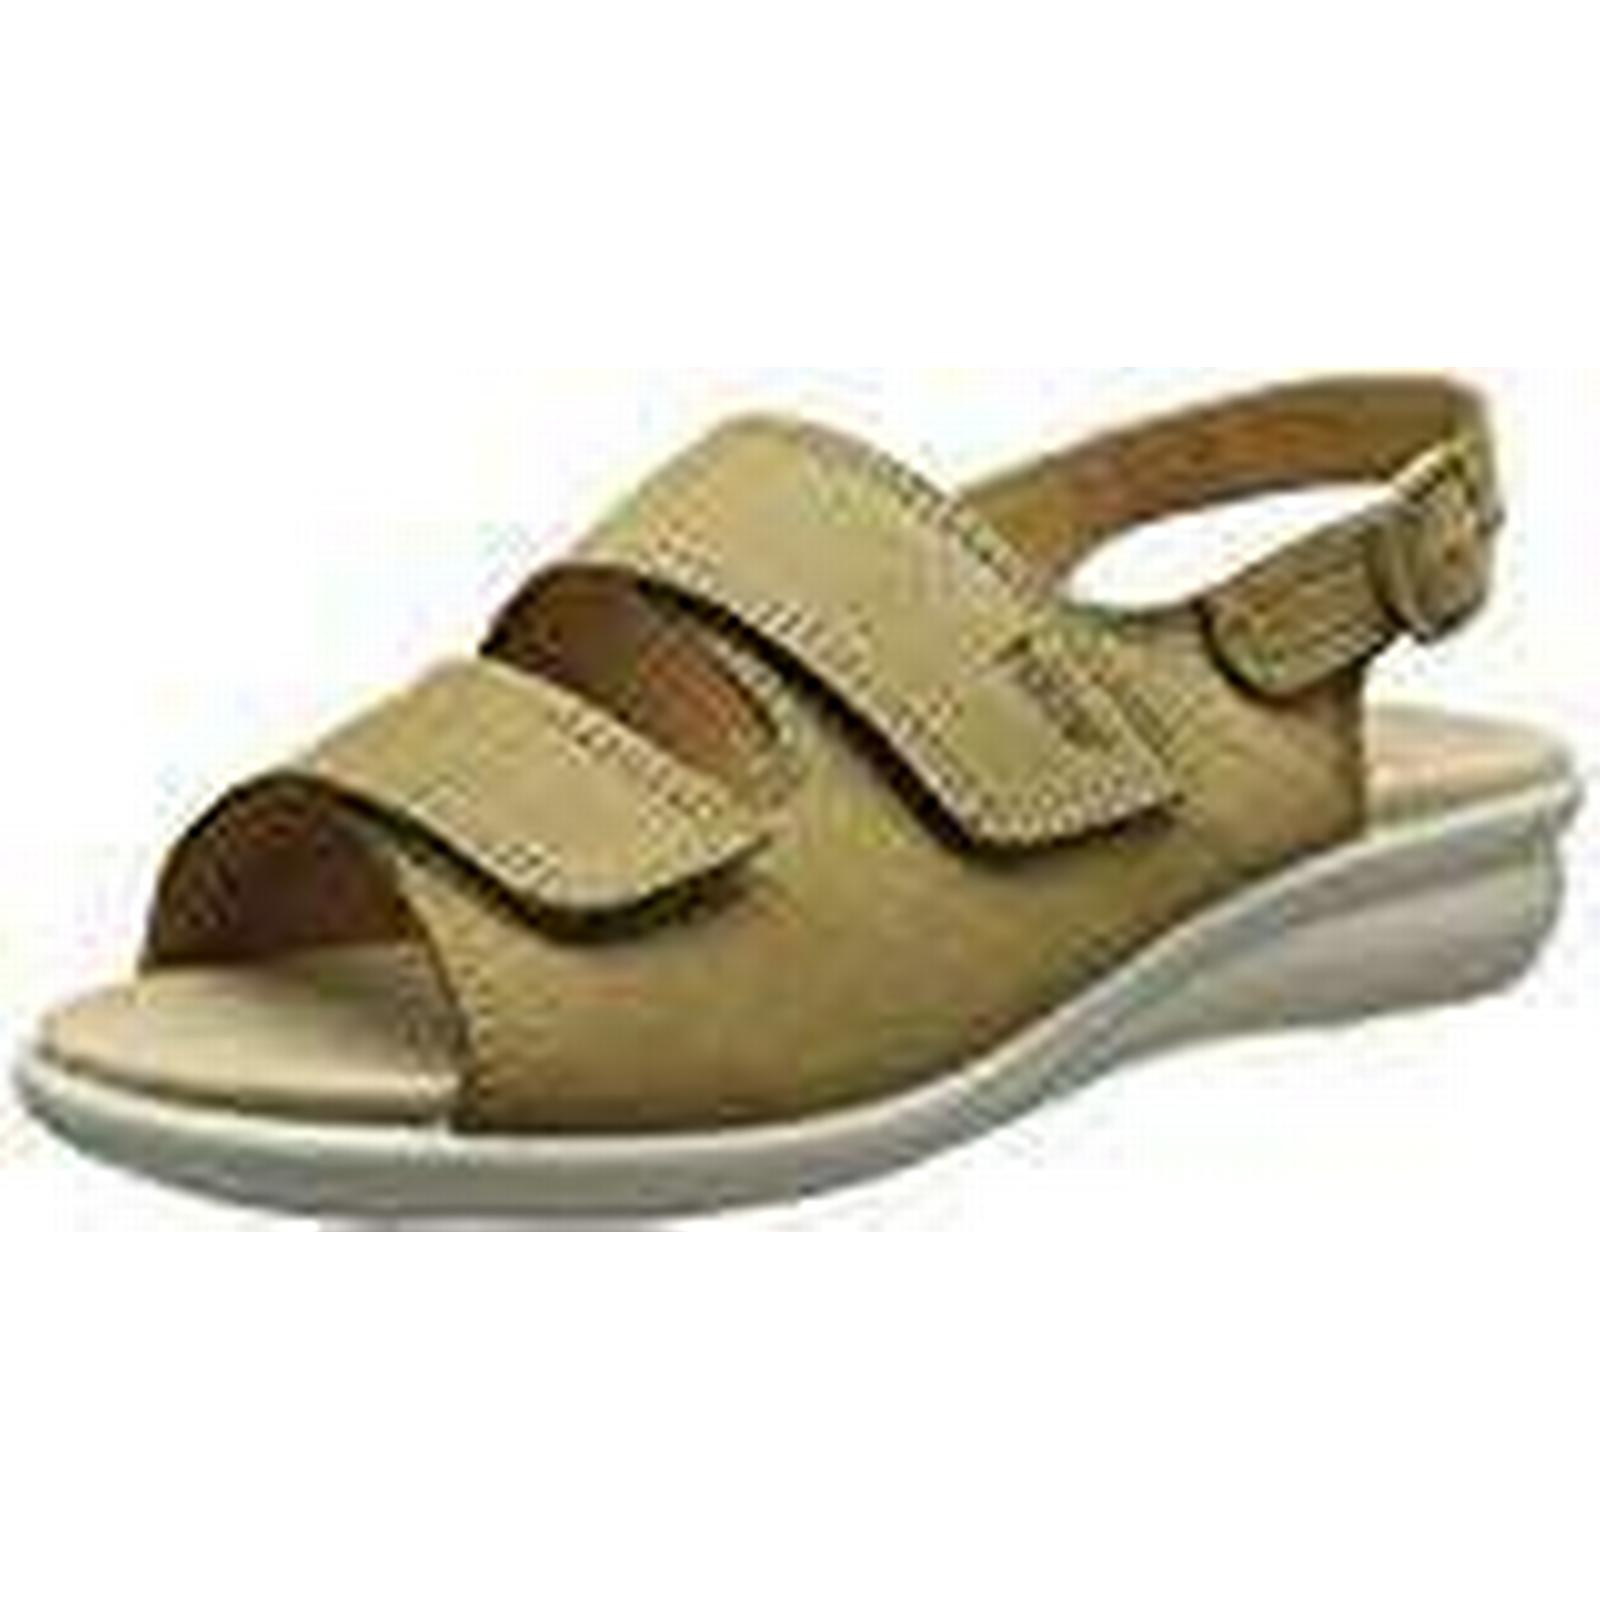 Hotter Women''s Easy UK EXF Open-Toe Sandals, Beige (Sand), 3 UK Easy 35.5 EU 13f051